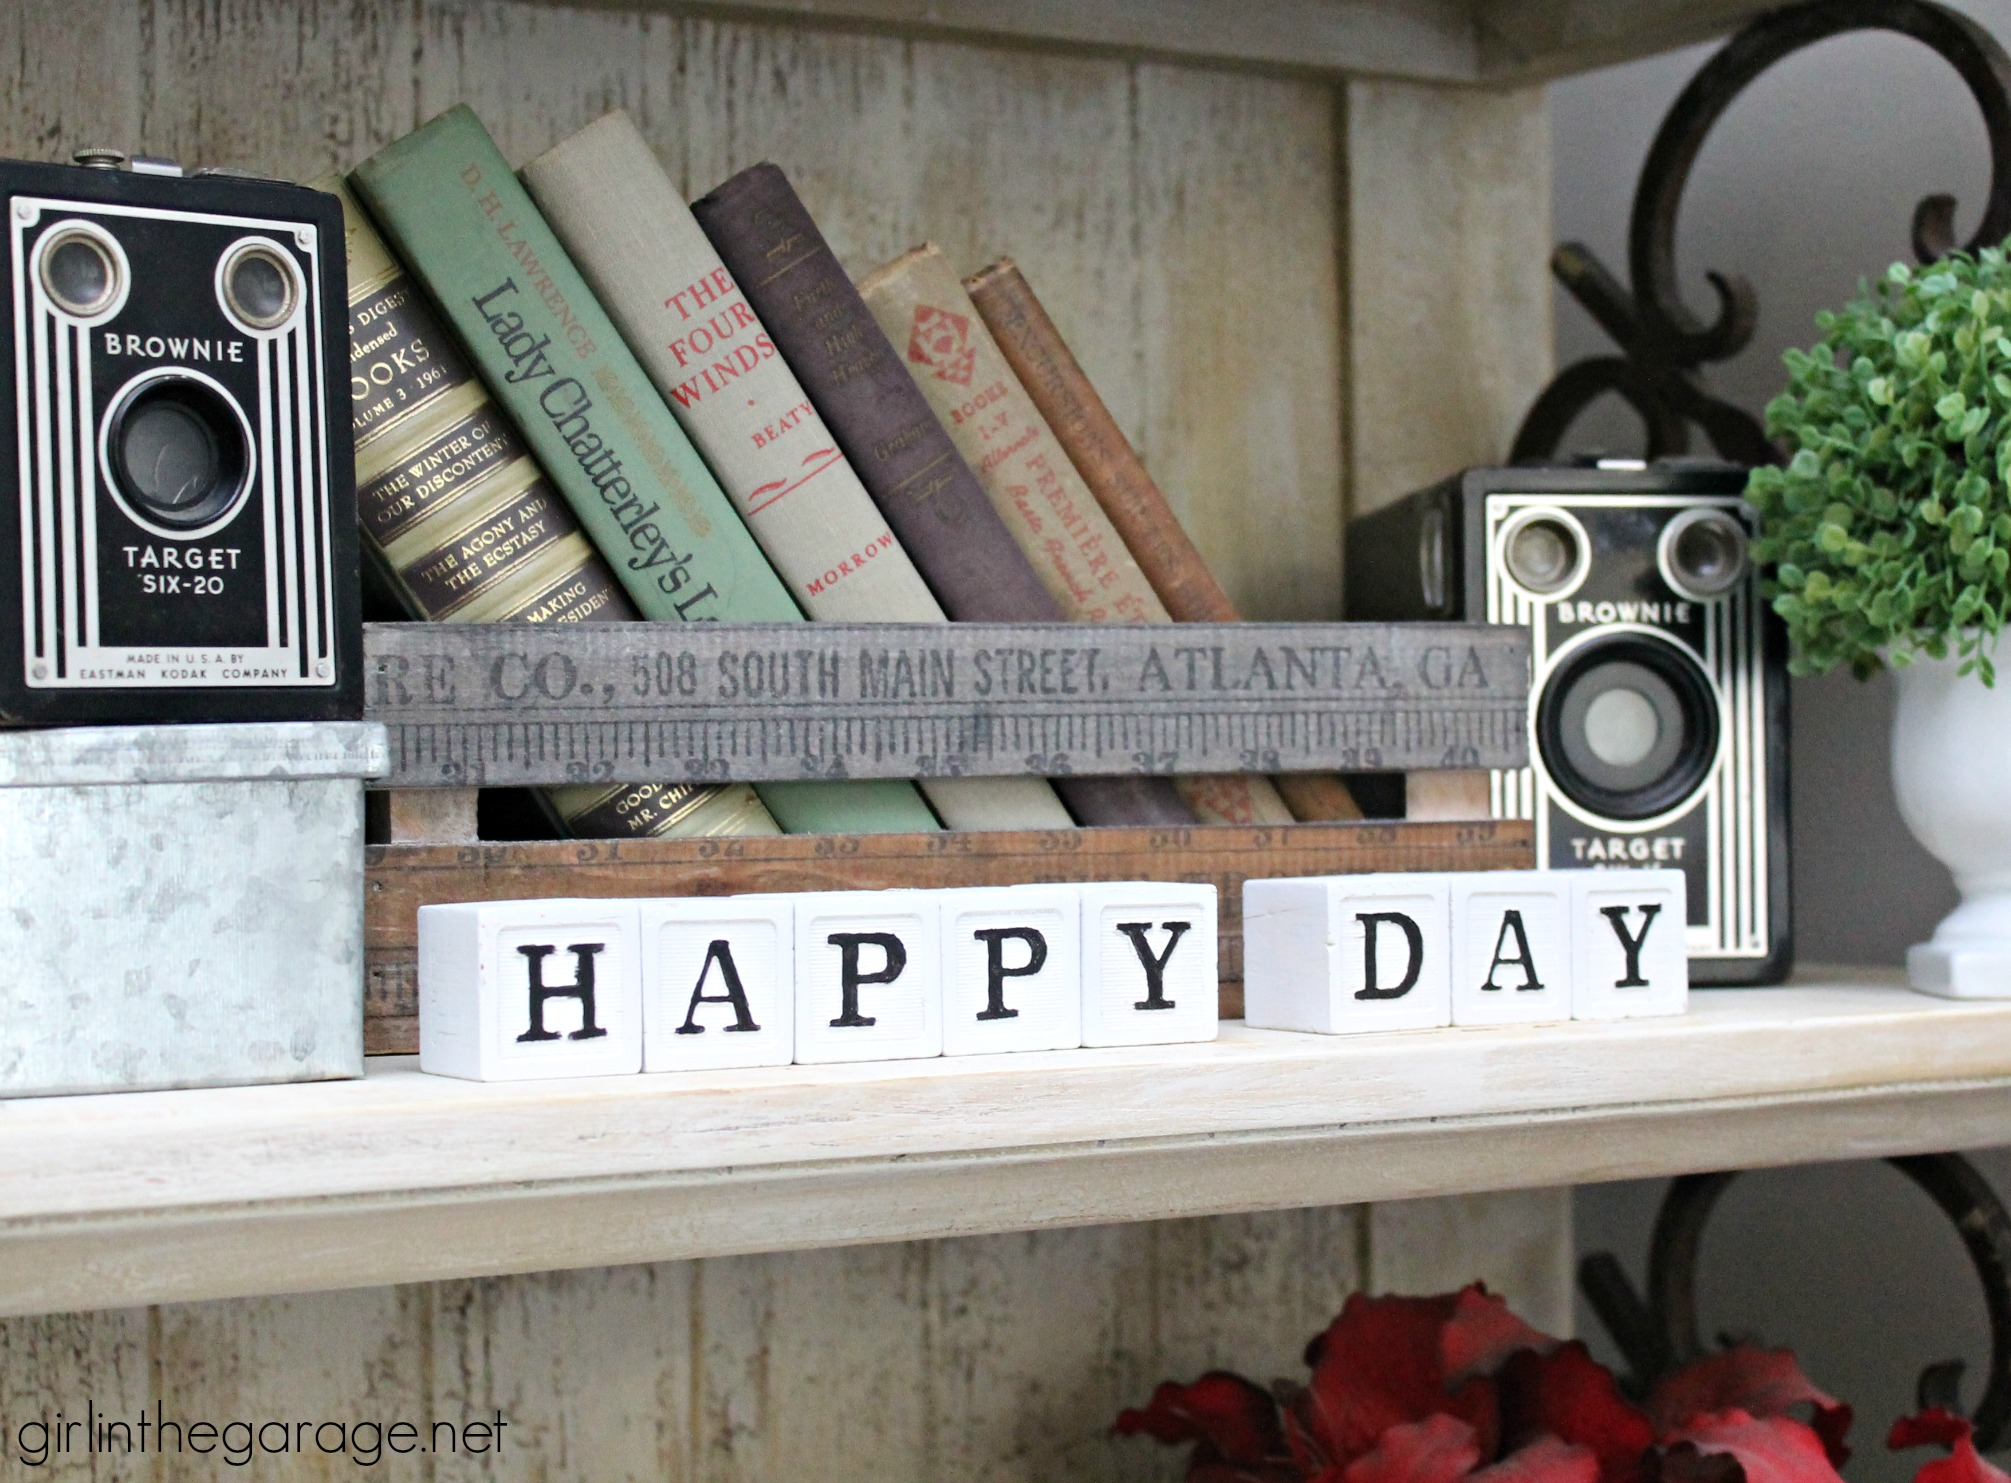 Turn old baby blocks into stylish grown up decor - display meaningful messages in your home. By Girl in the Garage